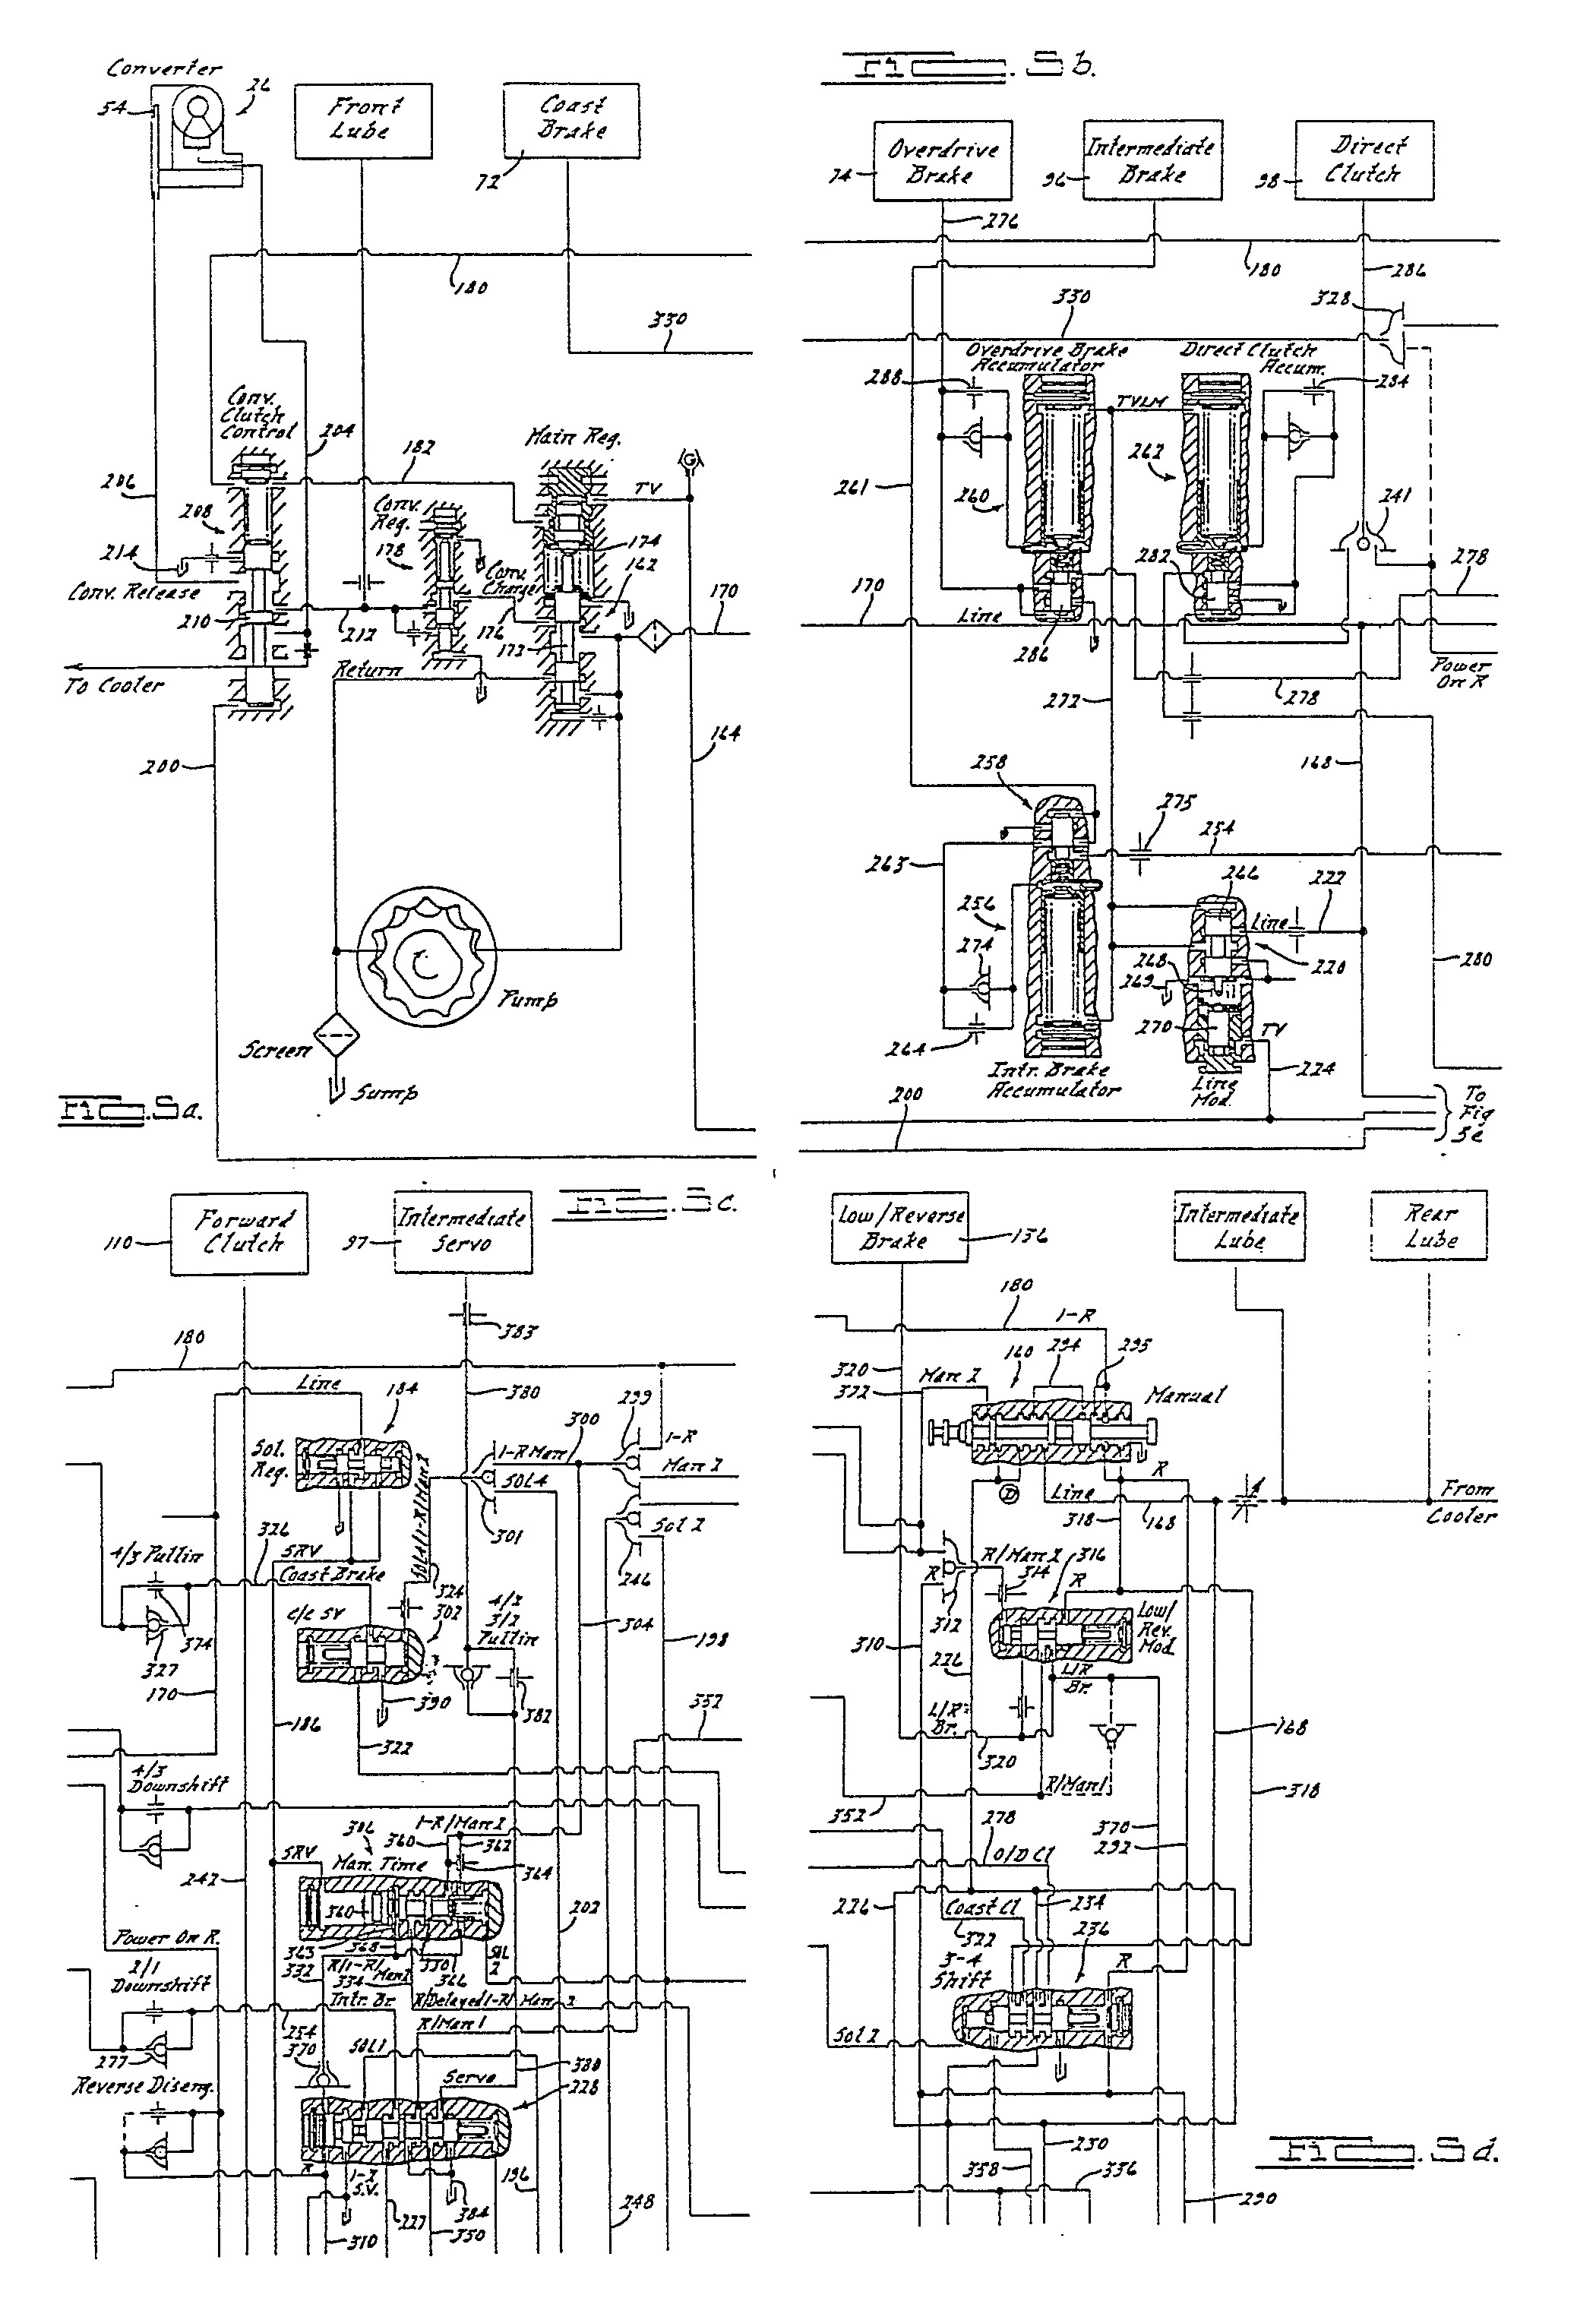 Clutch Diagram for A Manual Transmission Ep A2 Accumulator Control for Hydraulic Actuating Pressure Of Clutch Diagram for A Manual Transmission